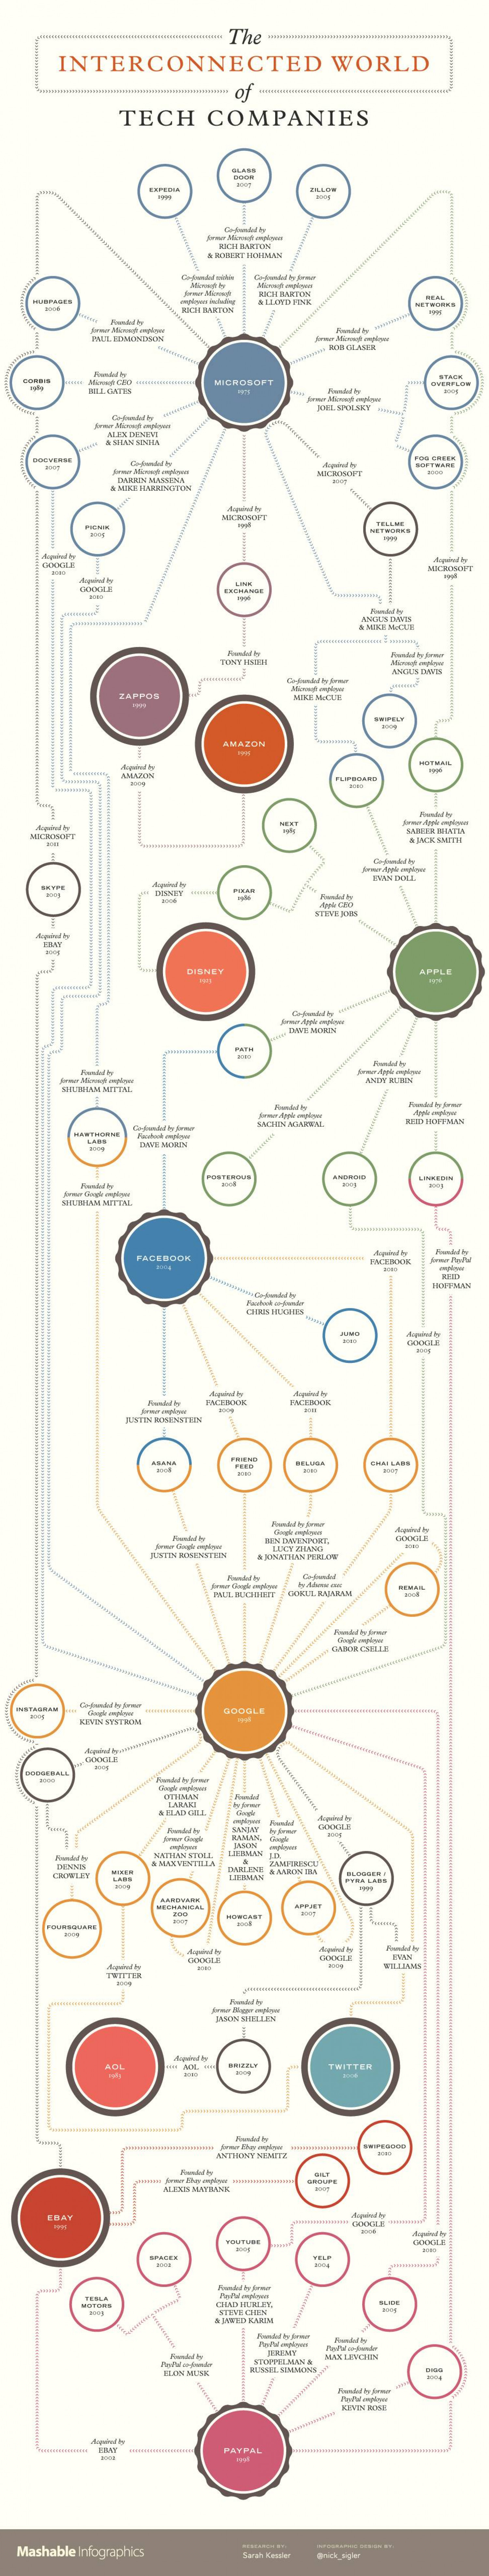 The Connected World of Tech Companies  Infographic